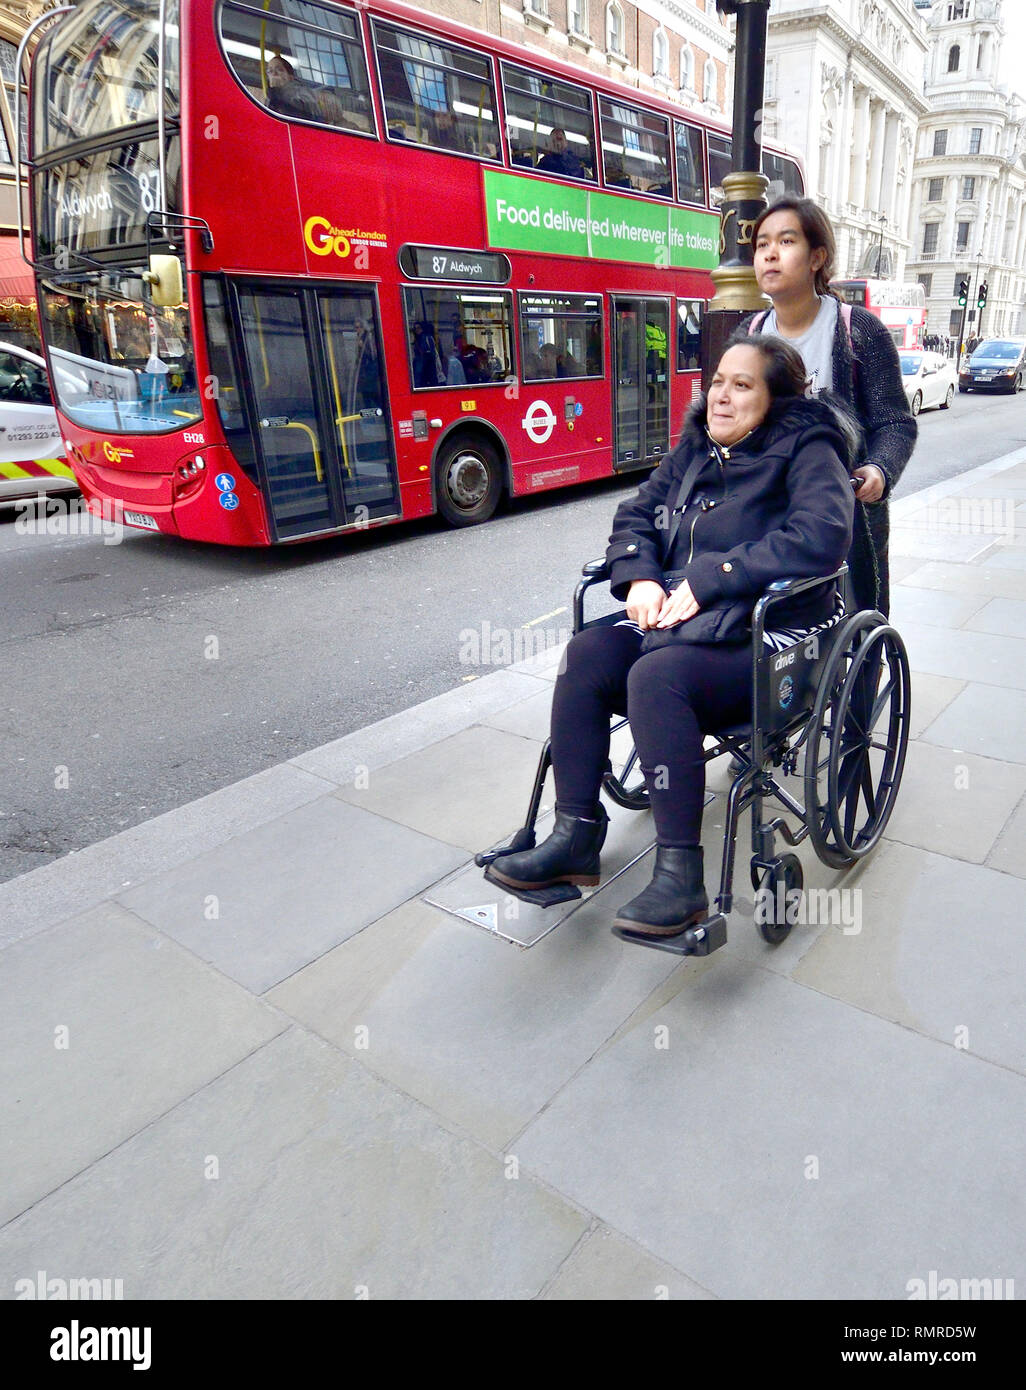 London, England, UK. Woman being pushed in a wheelchair in Whitehall as a bus passes - Stock Image